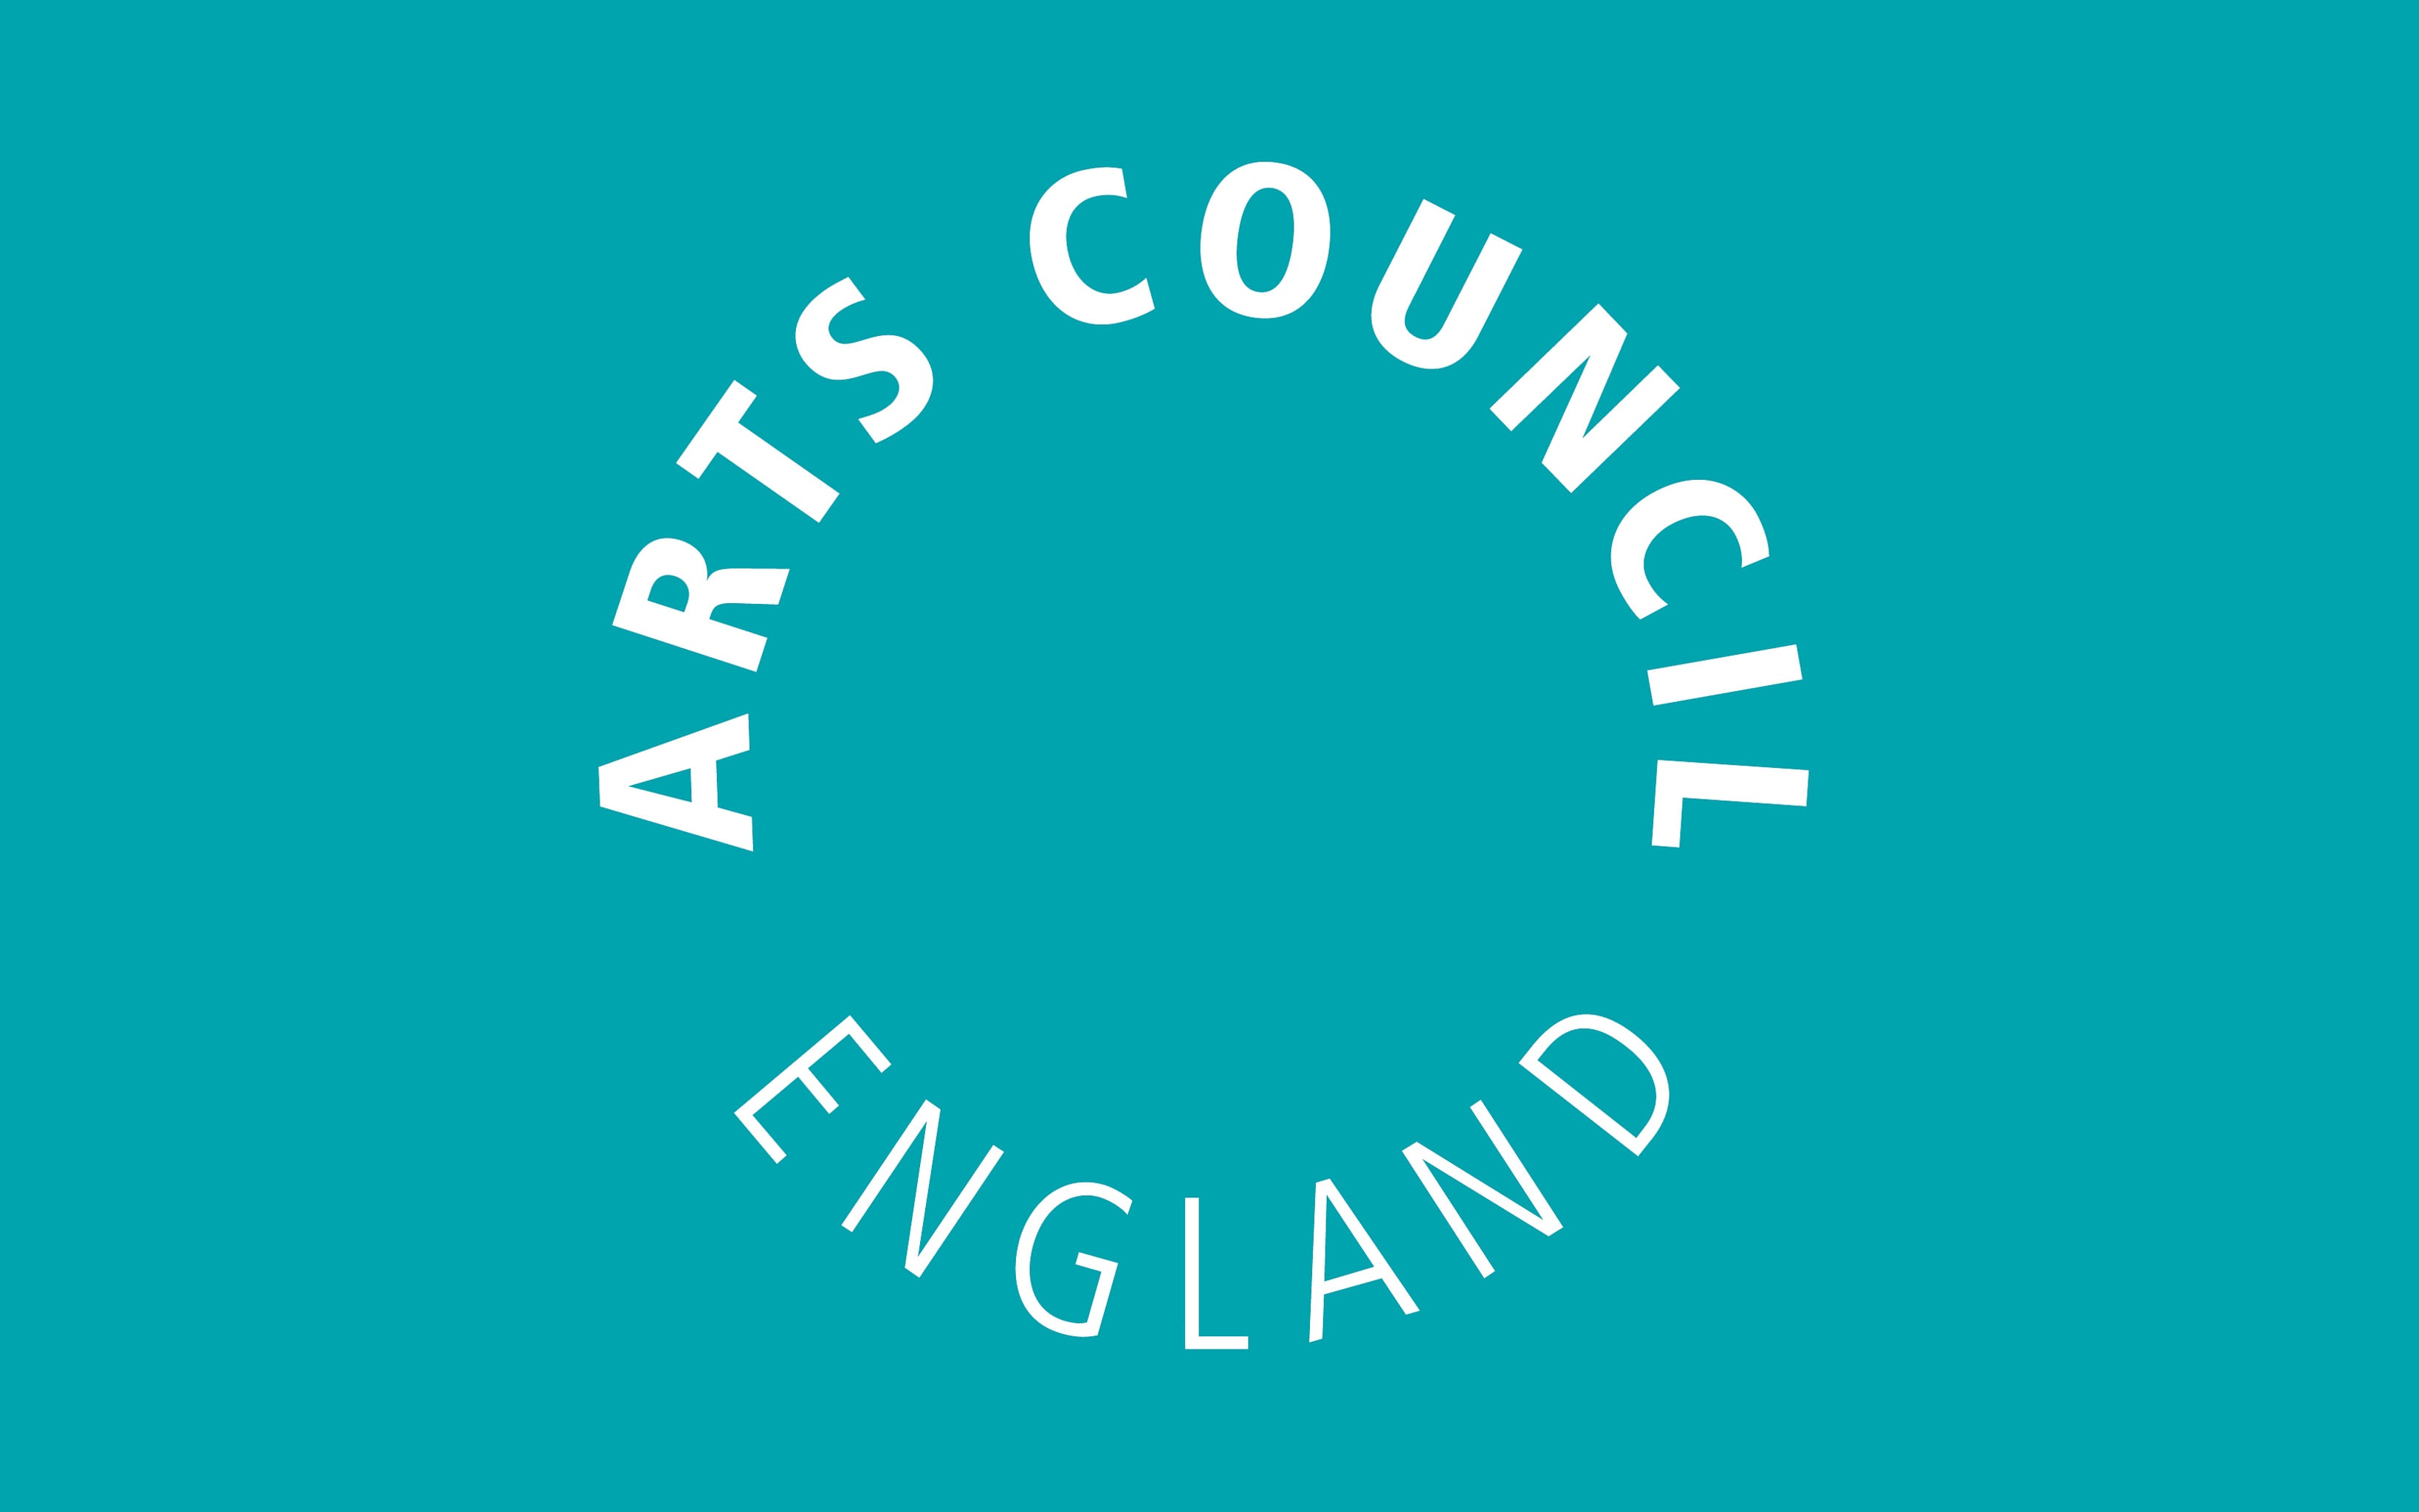 Arts Council England logo in white, on a turquoise background.